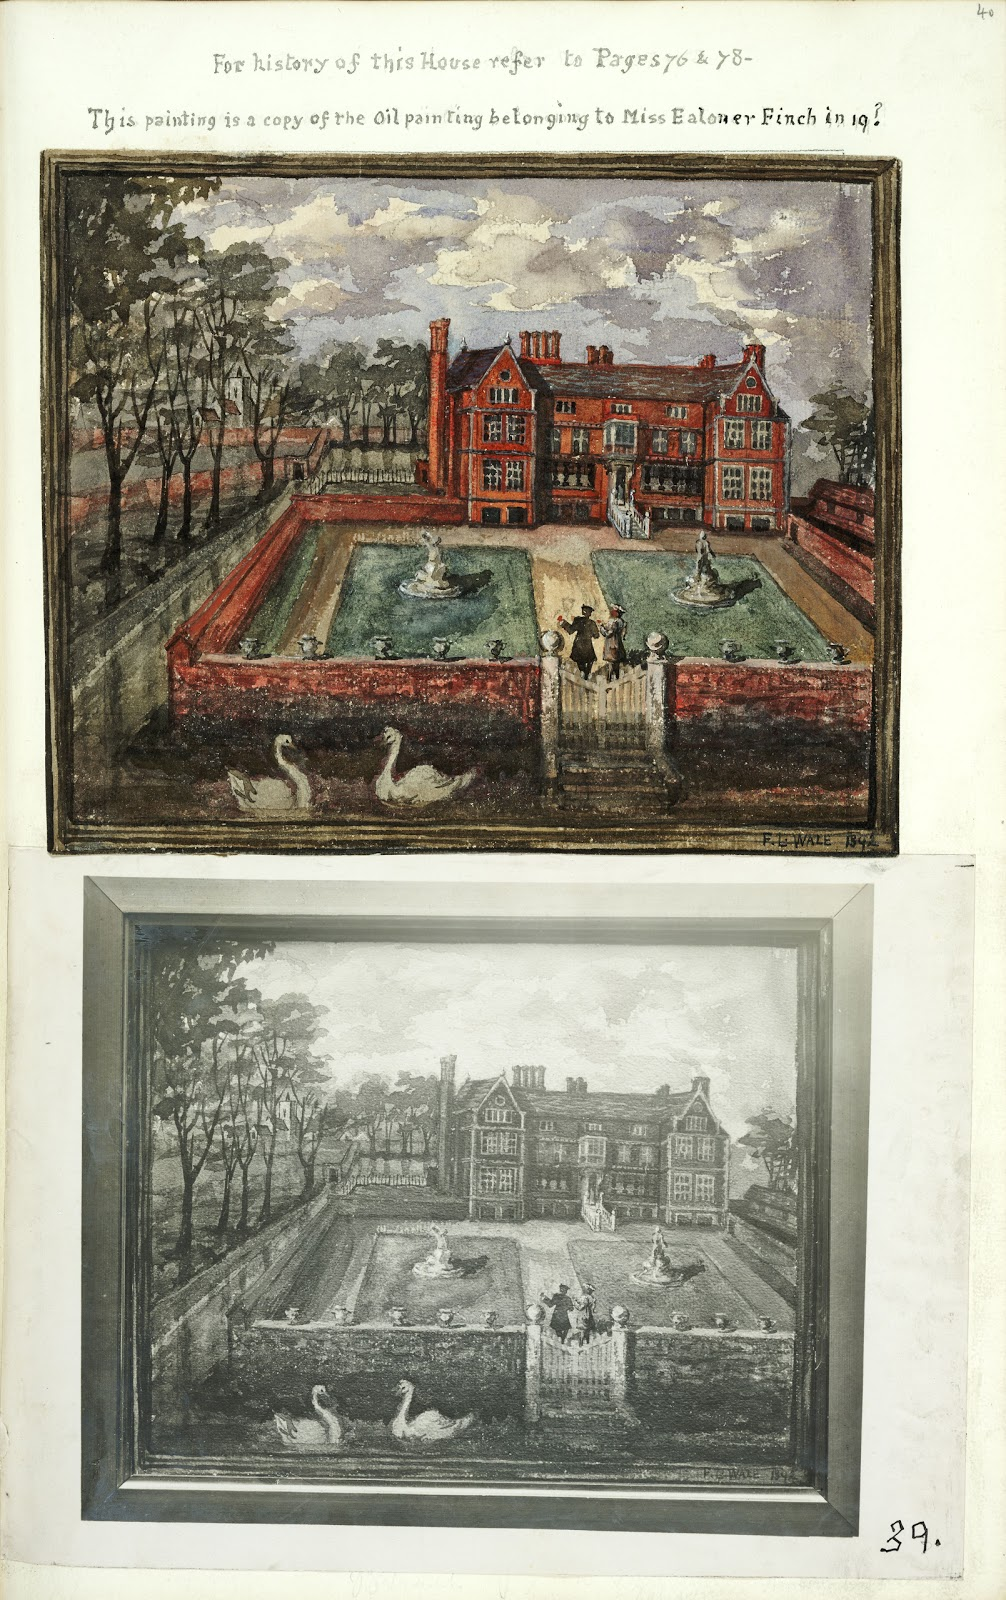 A Record of Shelford Parva by Fanny Wale P39 fo. 40, page 39: A watercolour copy in colour of an oil painting of Pallavicini's House belonging to Miss E. Finch, copied by F.L. Wale in 1892, with black and white photograph of same.  [not in photographic copy]